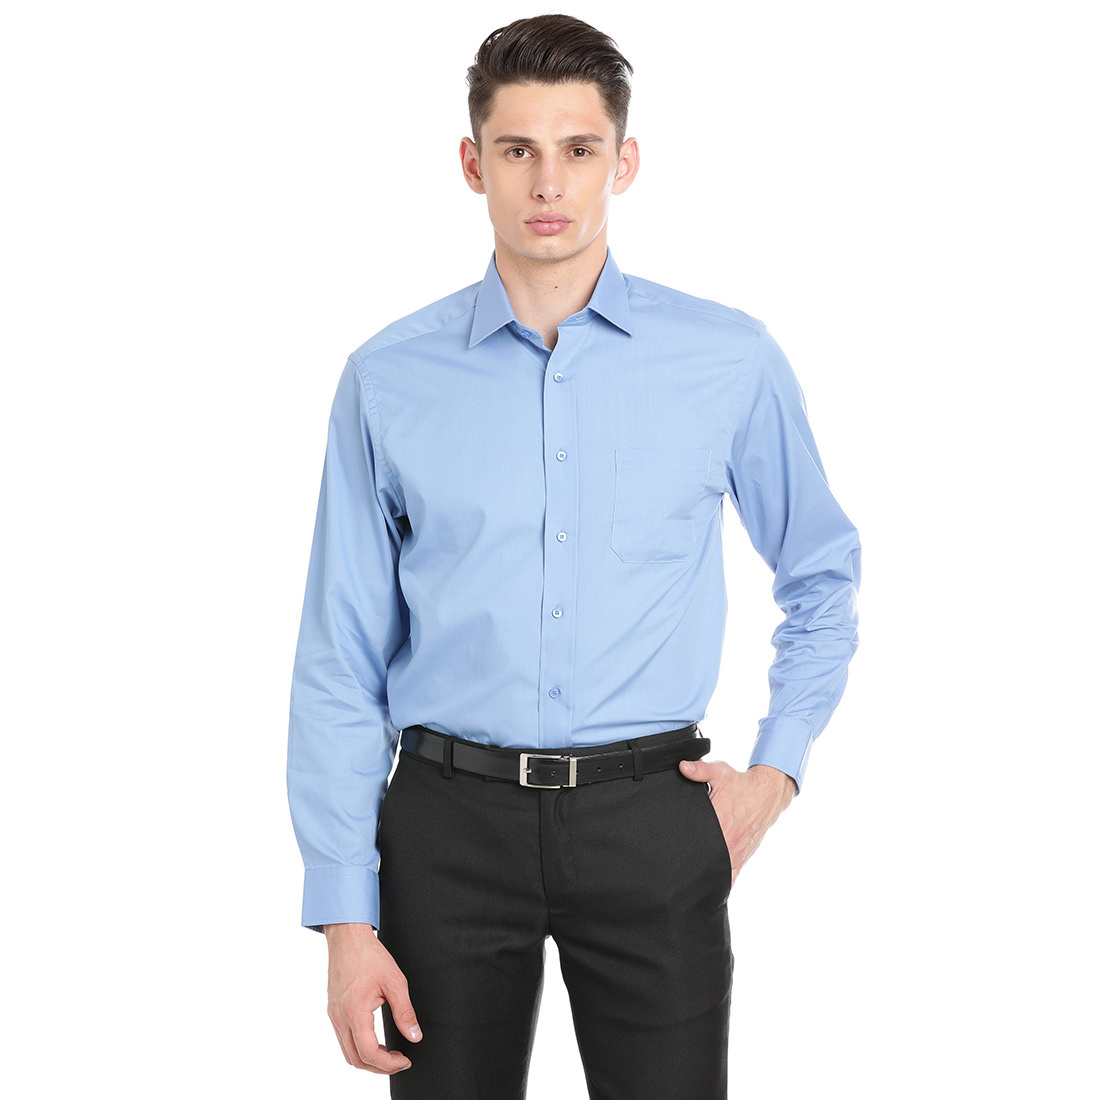 Paradigm Light Blue Color Formal Pure Cotton Non-Iron Shirt